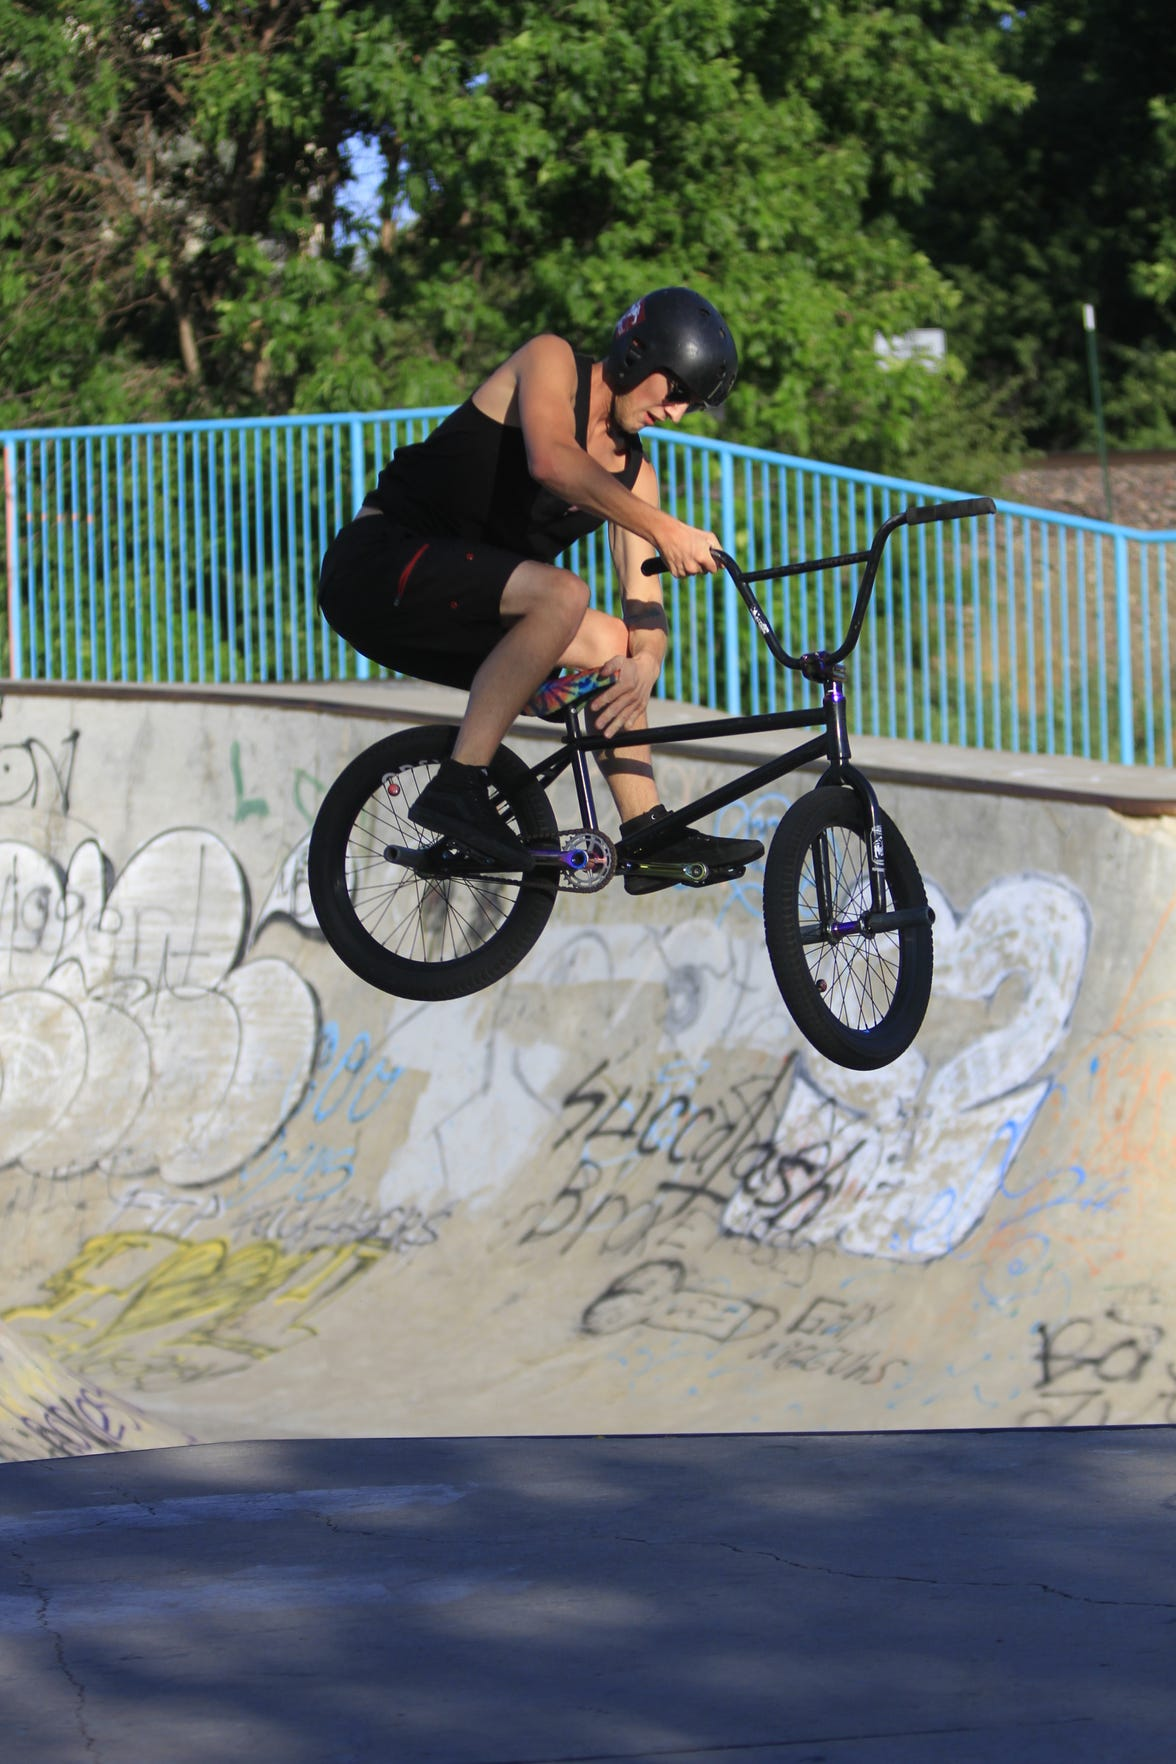 Edward Spicer at riding at Riverside Railyard Skate Park on Thursday evening